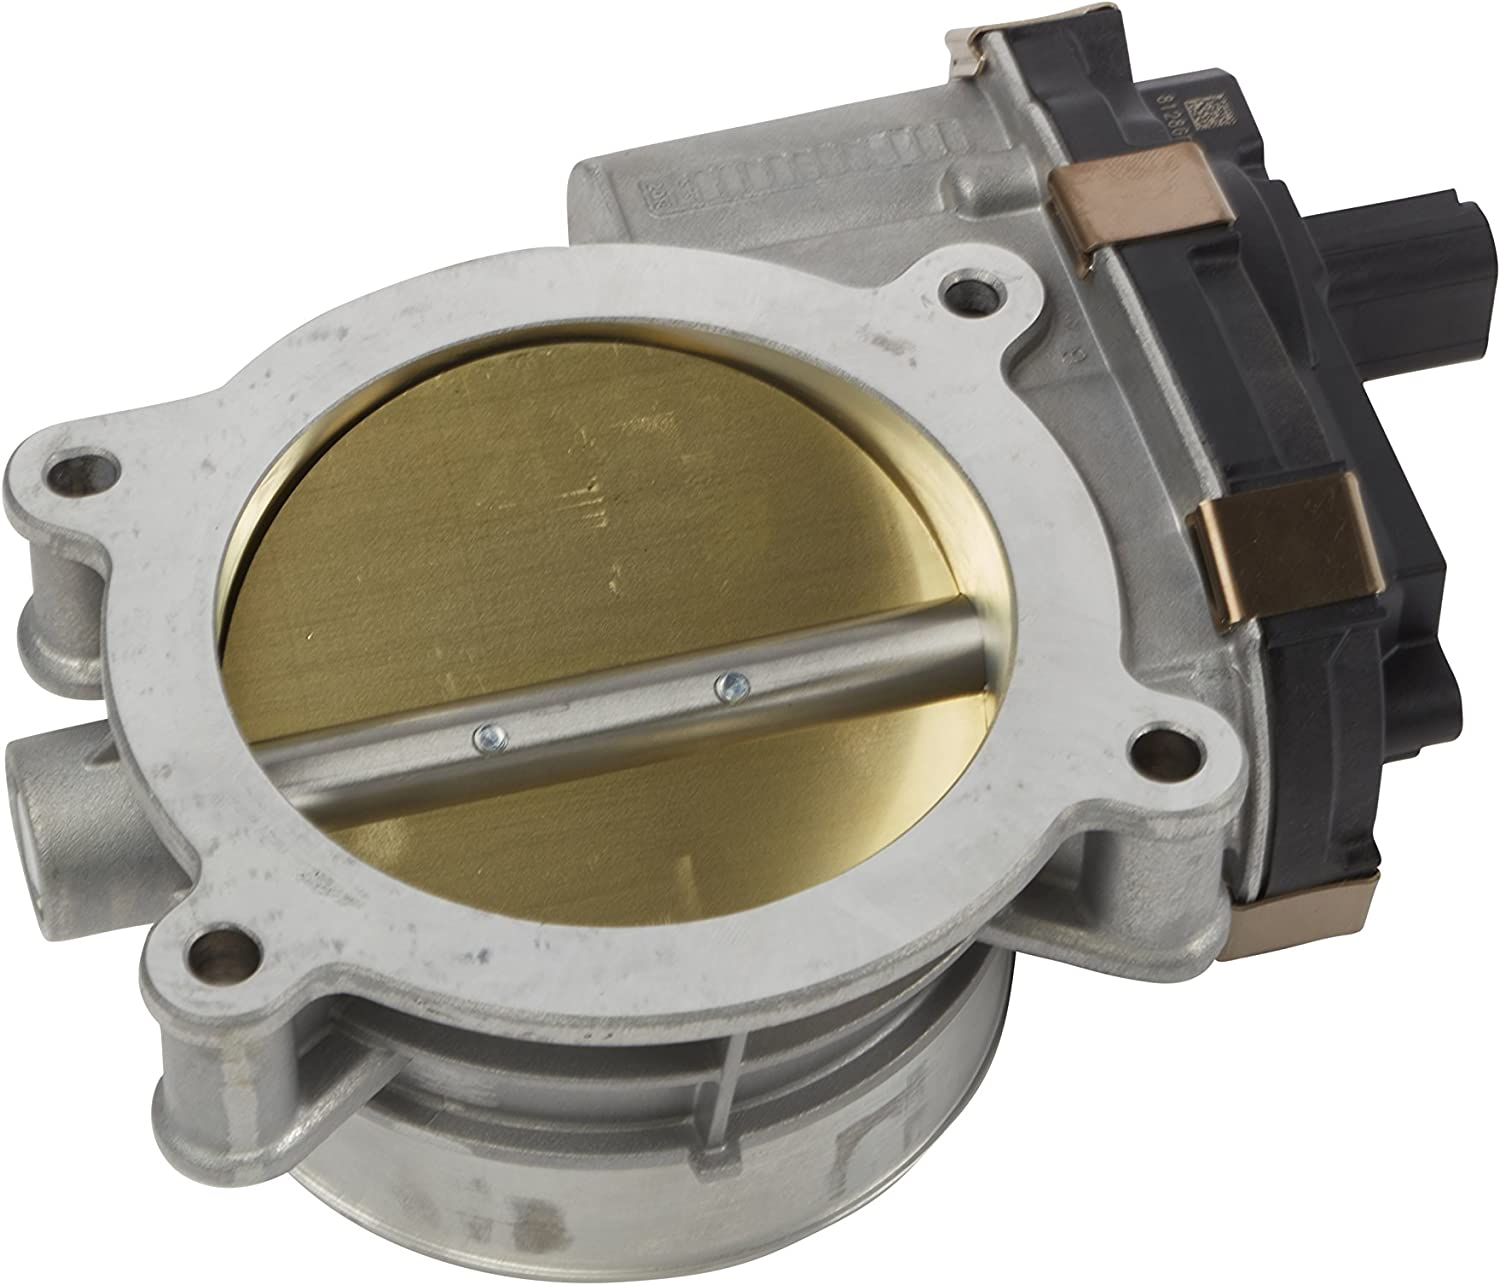 GM Genuine Parts 12678223 Fuel Injection Throttle Body Assembly with Sensor